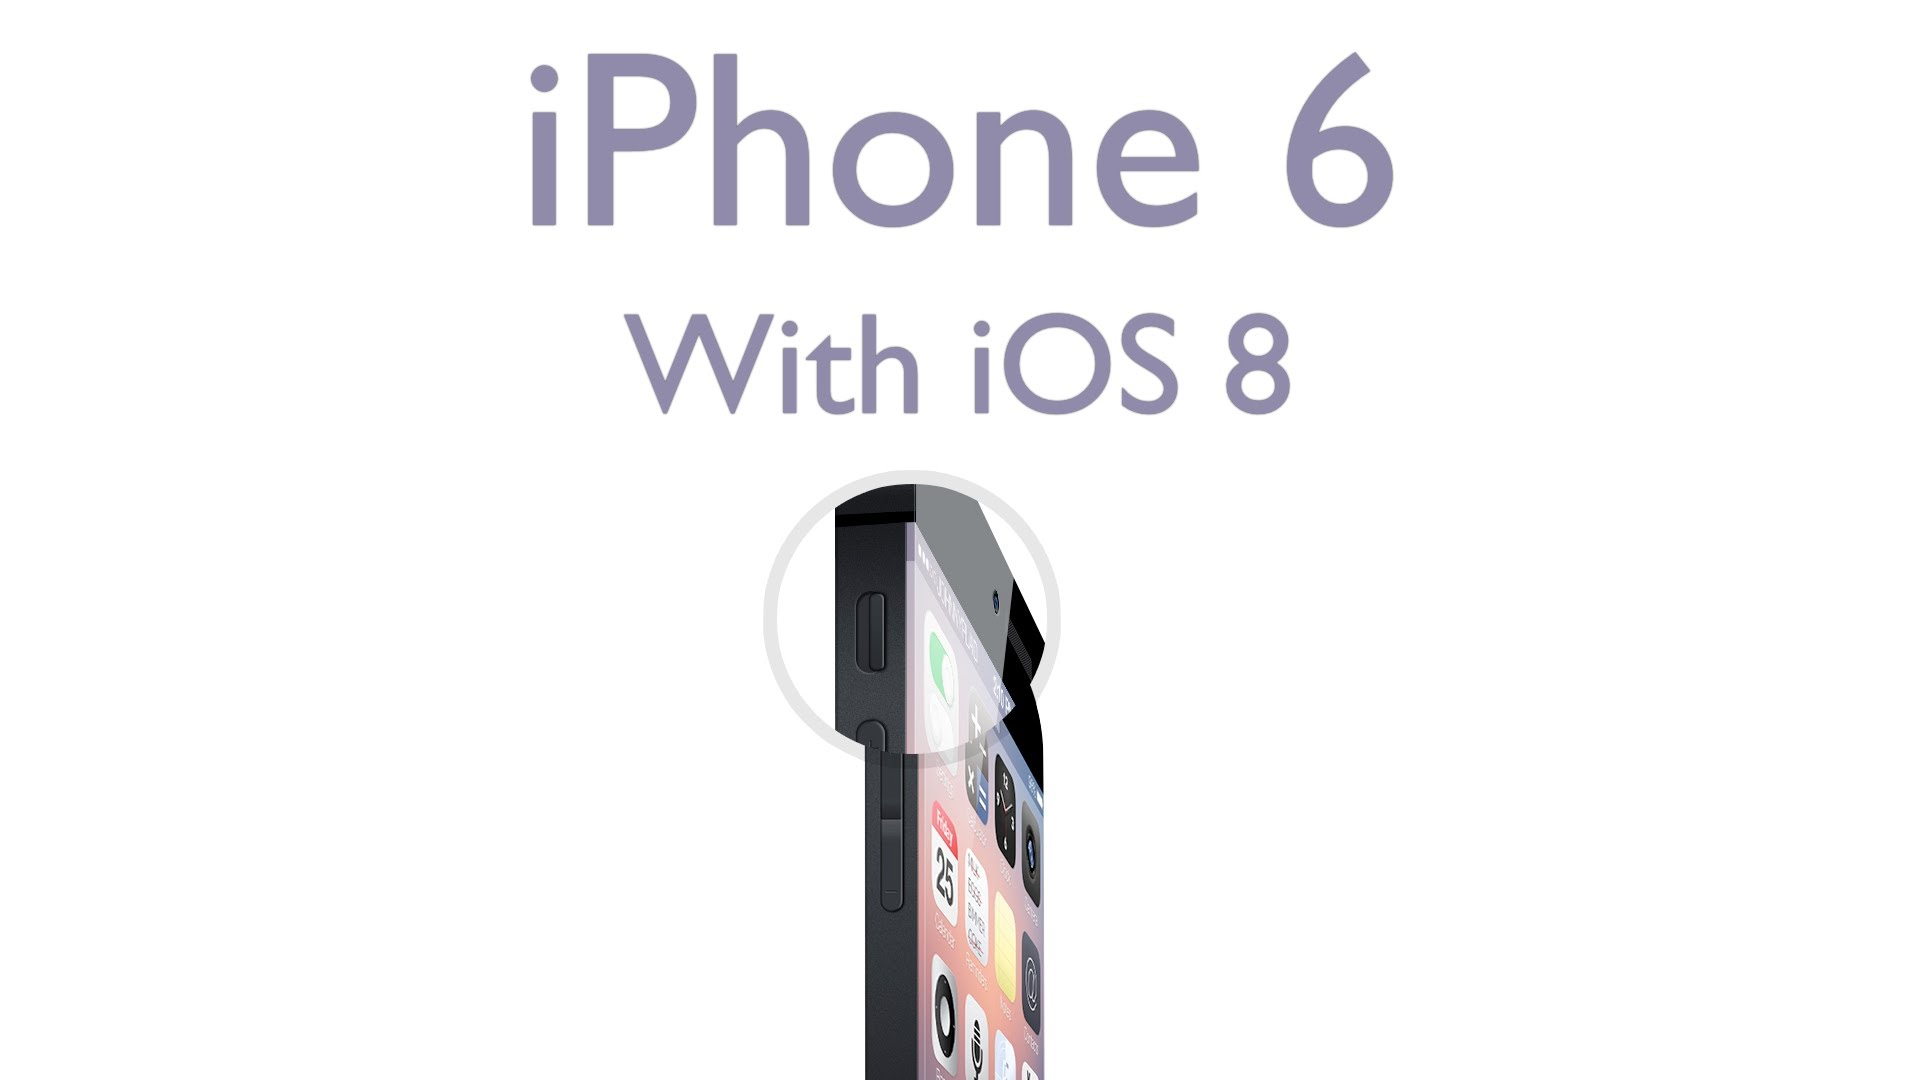 Concept design for iPhone 6 and iOS 8